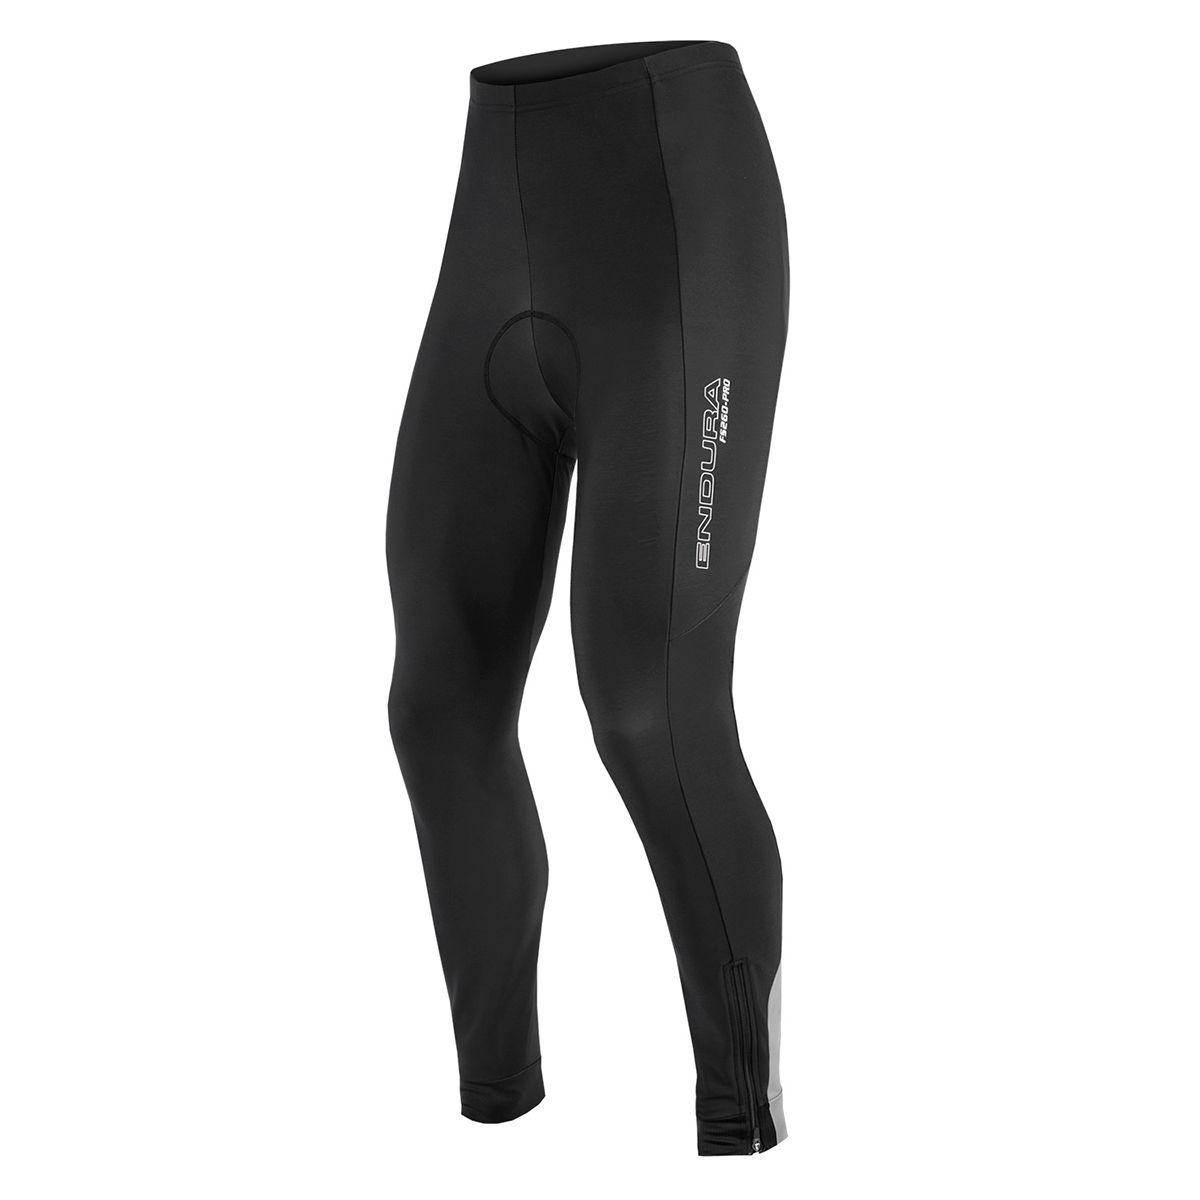 FS260-PRO THERMO TIGHT Herren Radhose lang Winter